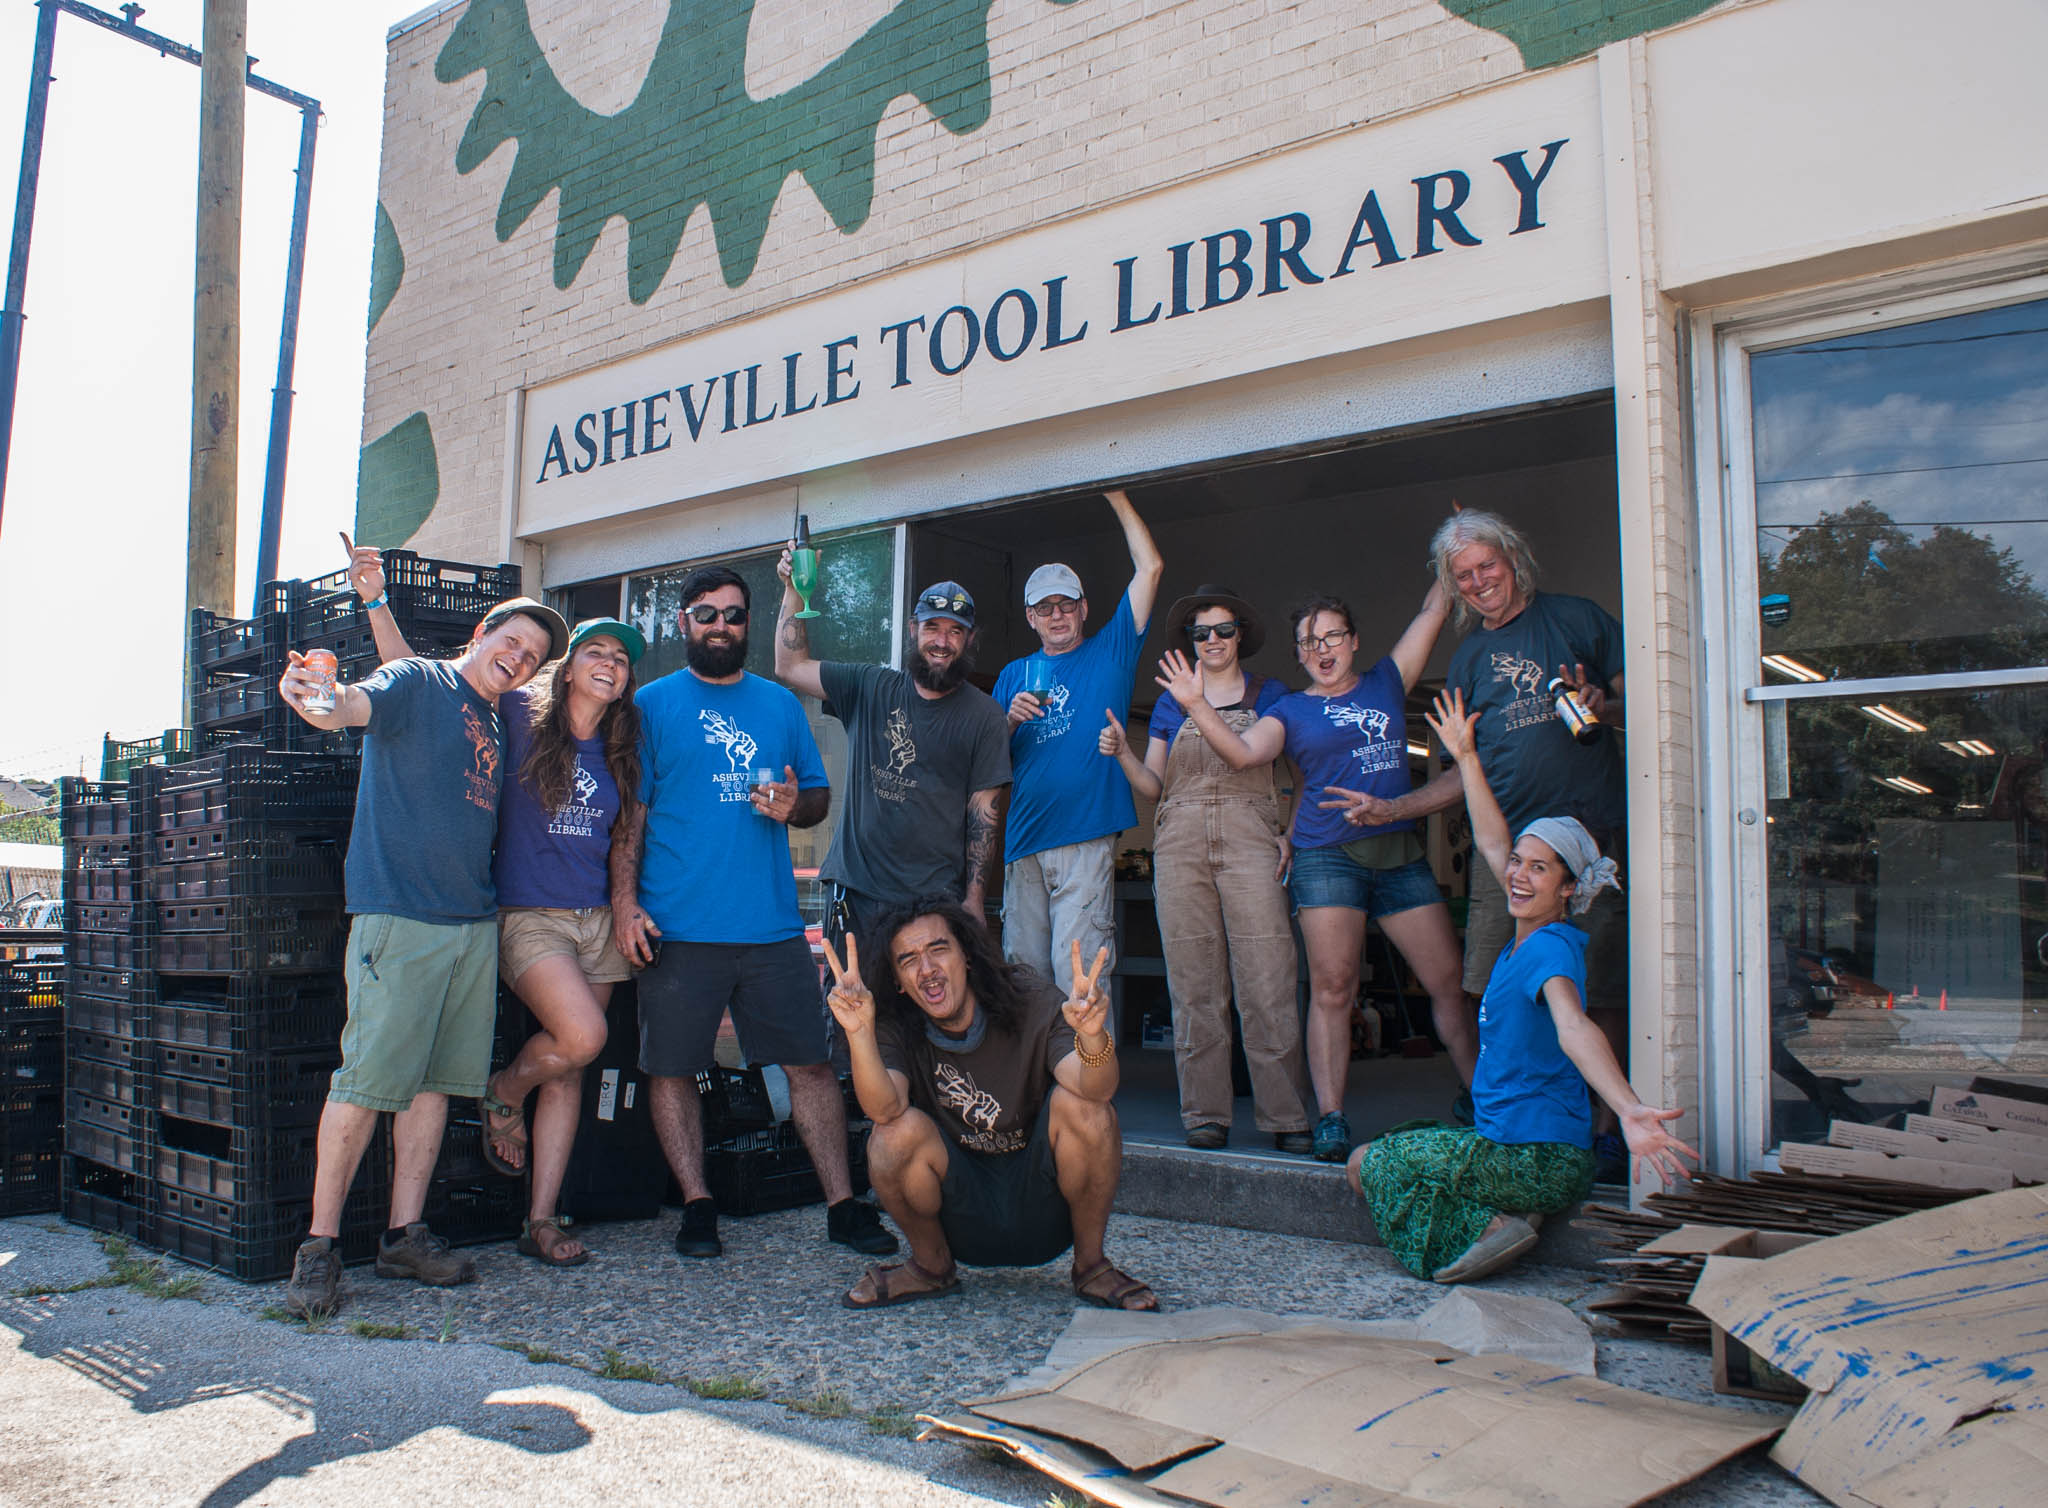 Join Asheville Tool Library